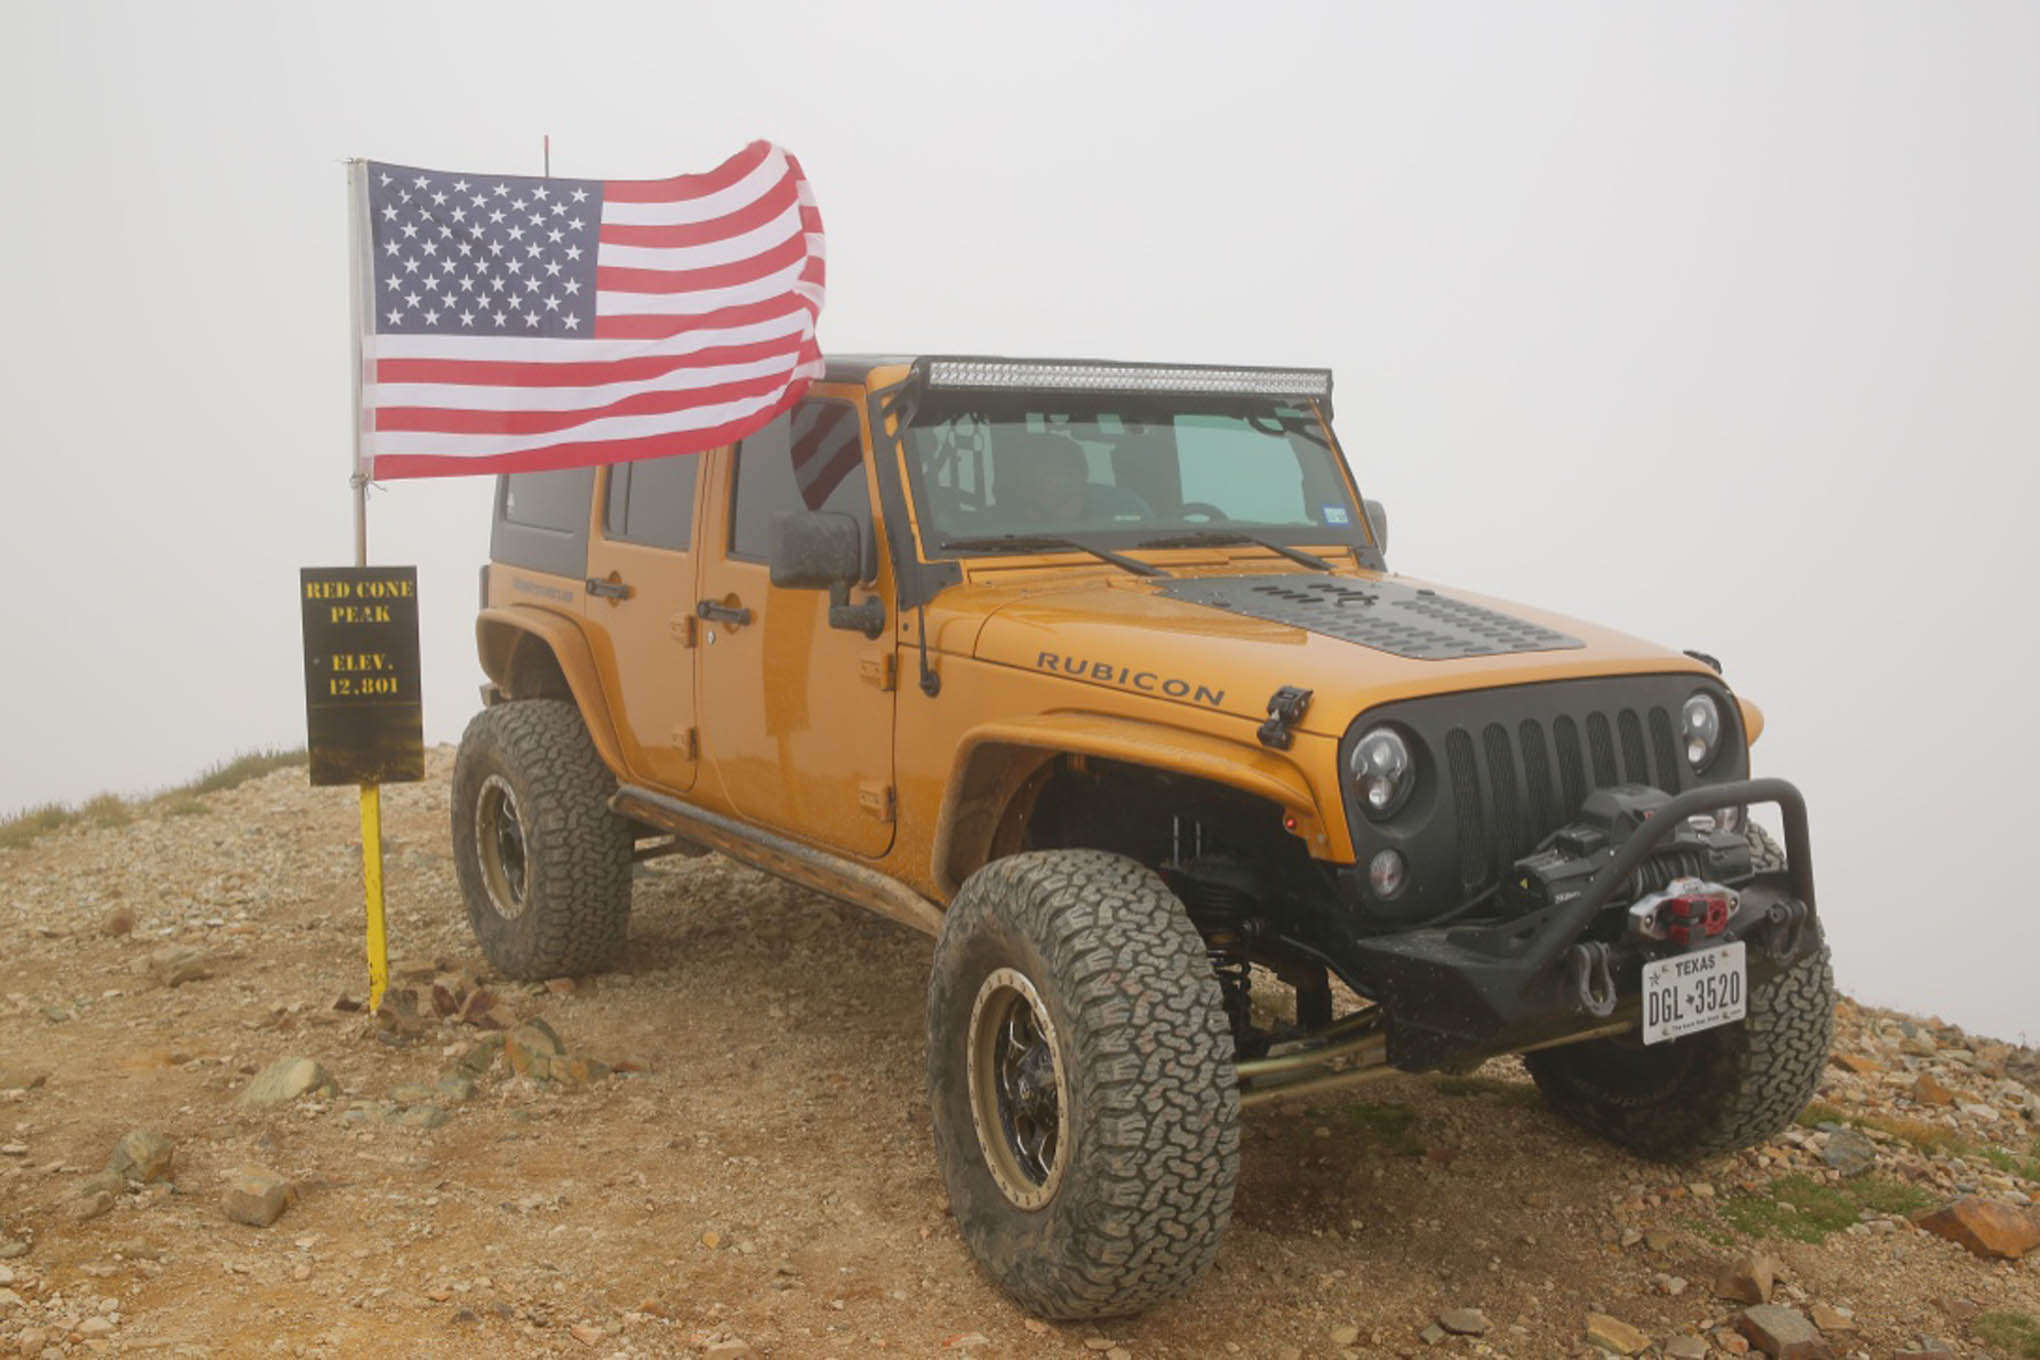 David Moose from Houston, Texas, at the summit of Red Cone Peak in his built '14 JK Unlimited Rubicon.